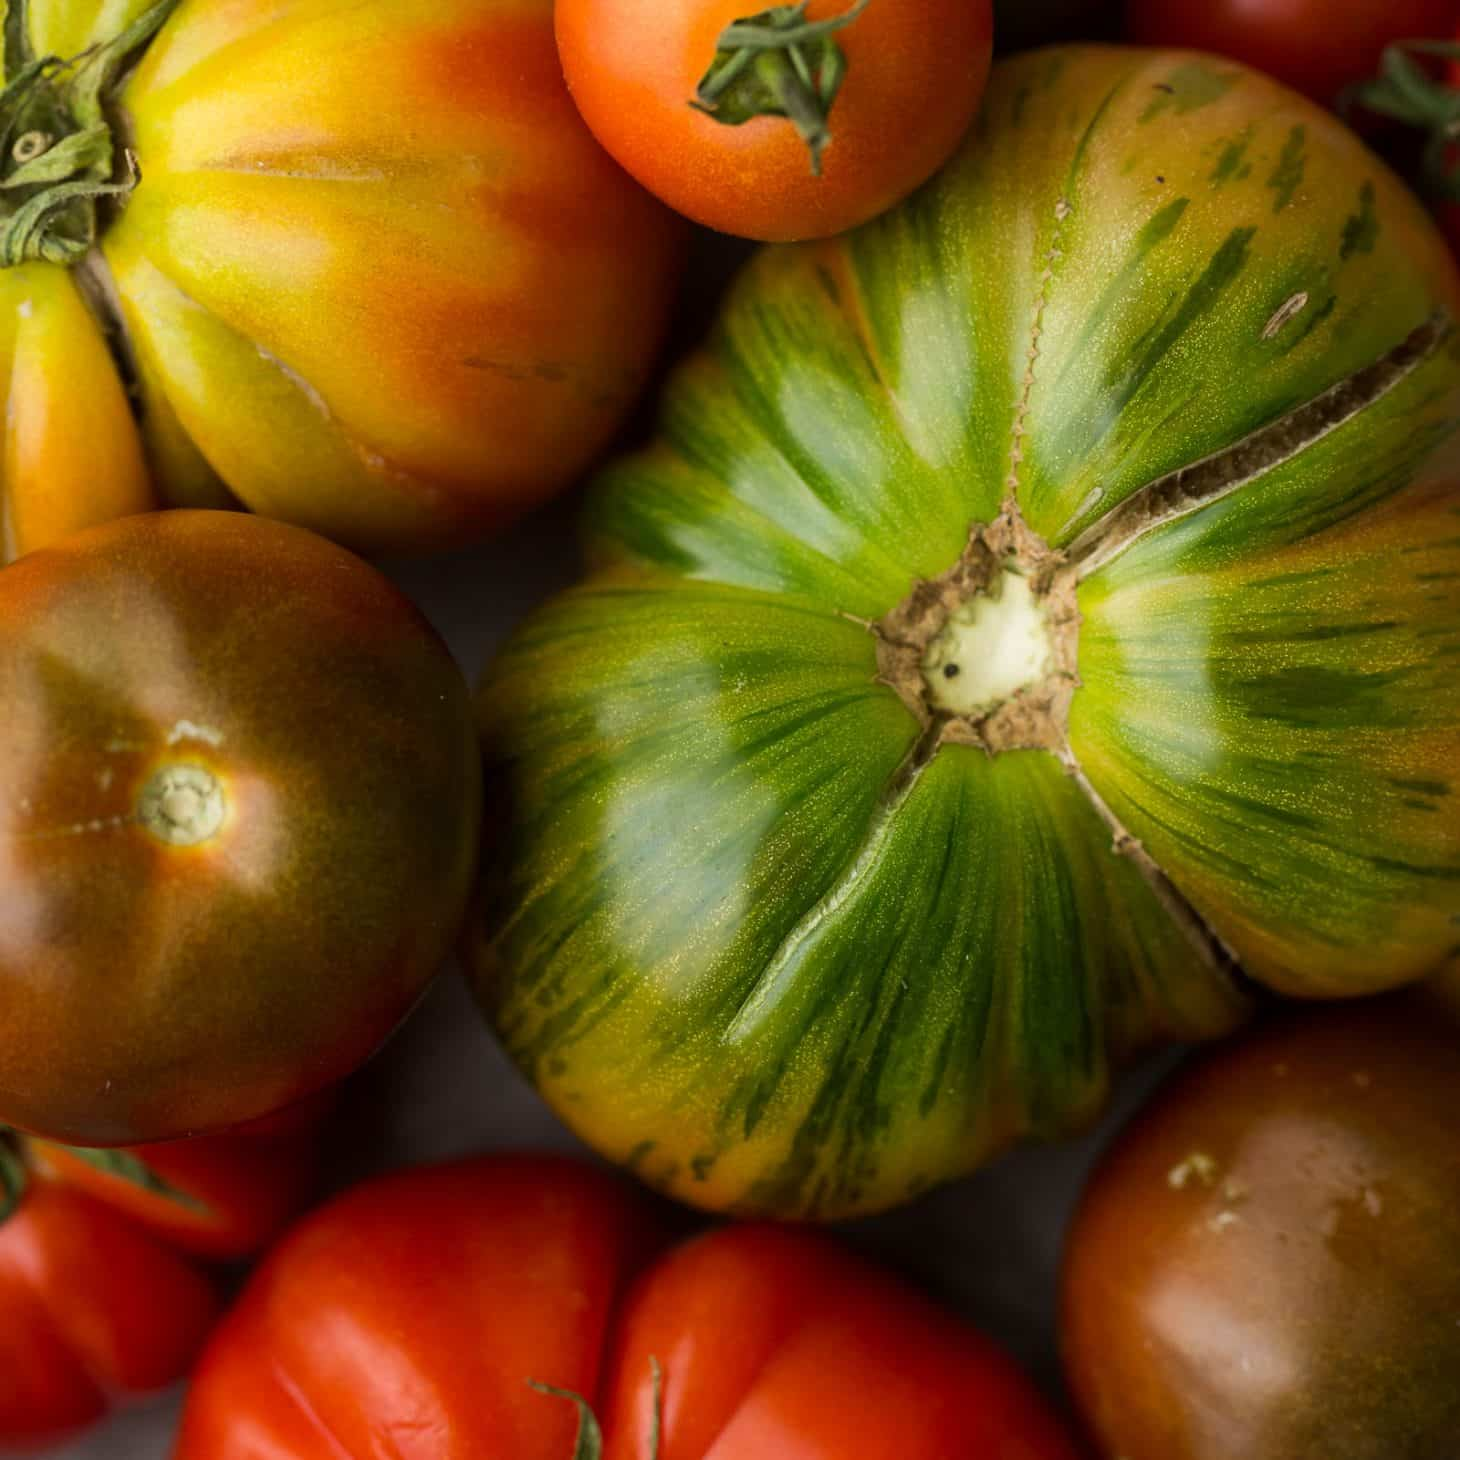 Tomatoes | Explore an Ingredient